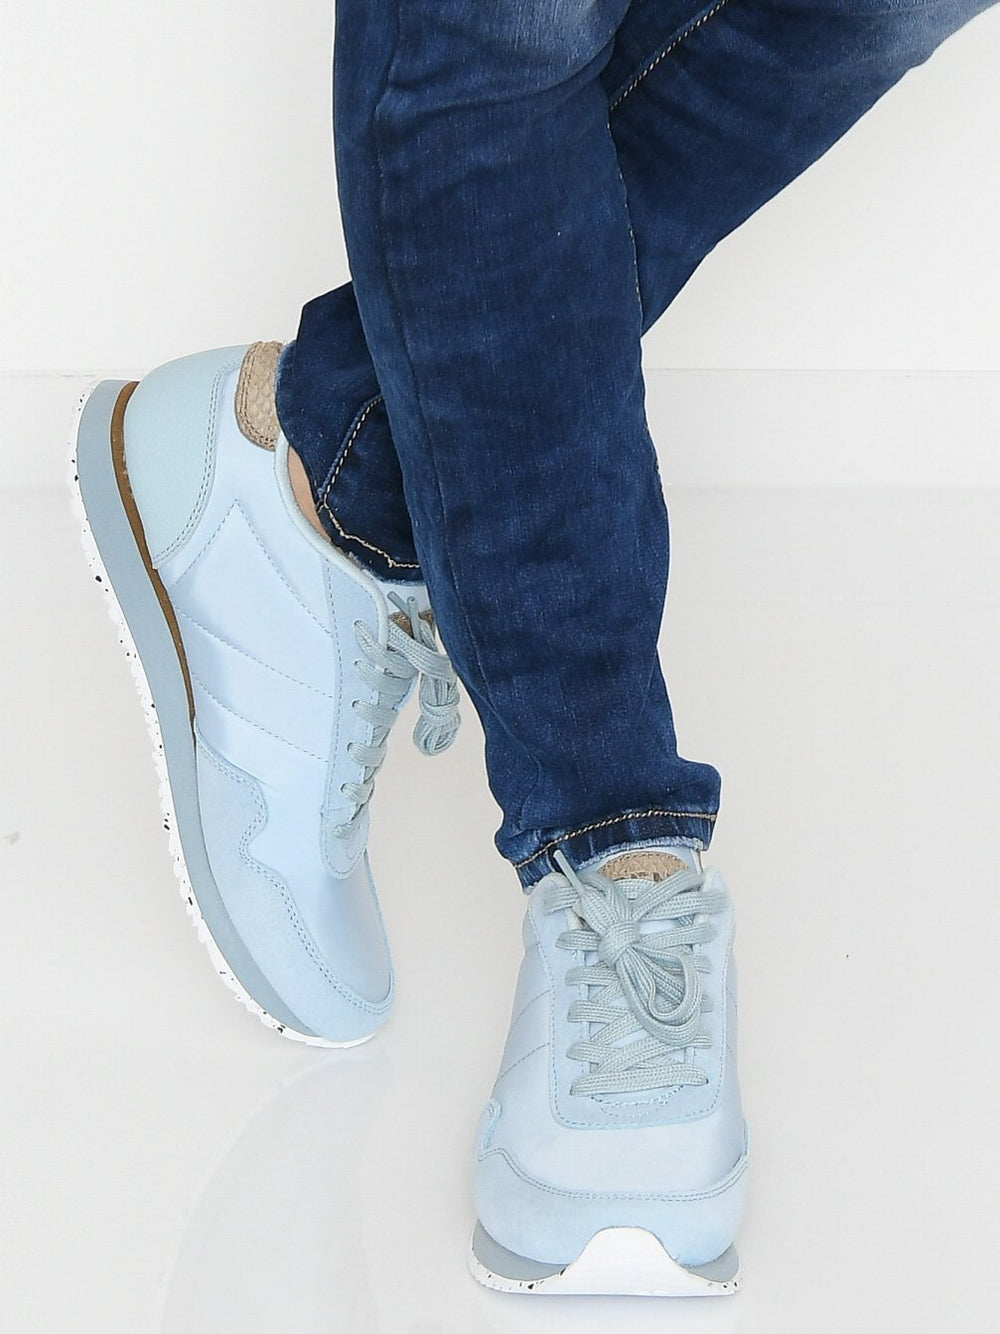 Woden Nora III Leather sneakers ice blue - Online-Mode